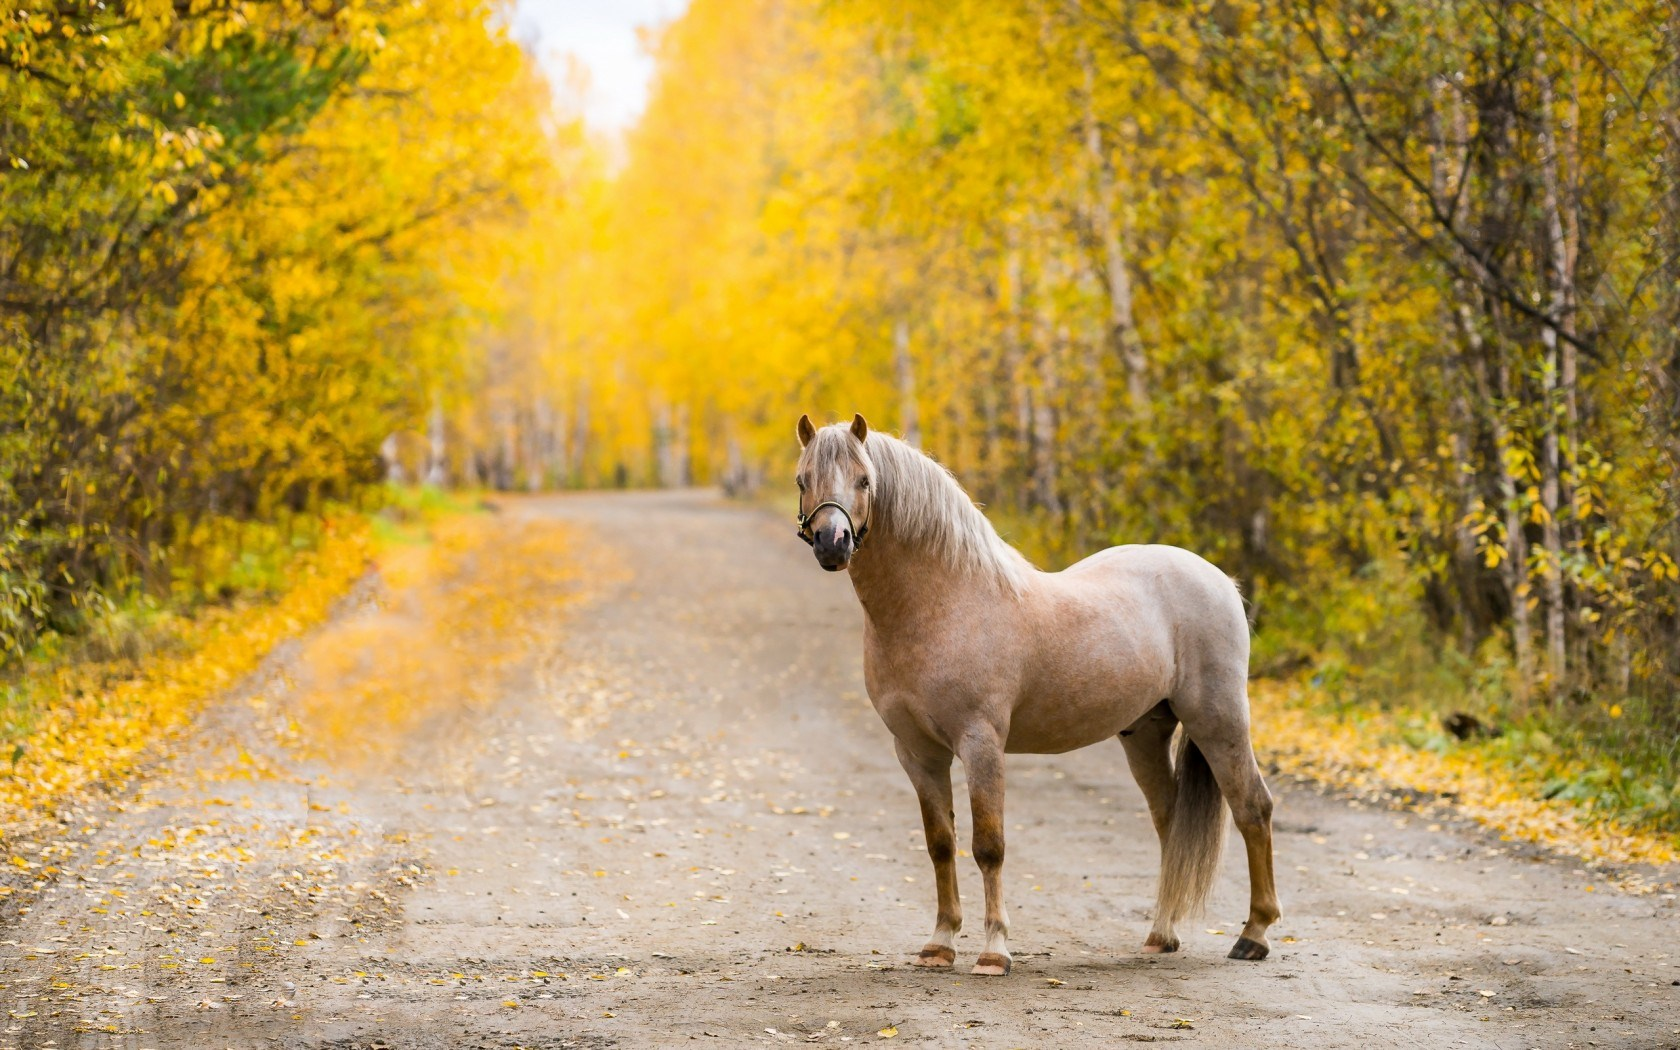 Horse Computer Wallpaper Photos 59332 1680x1050 px HDWallSourcecom